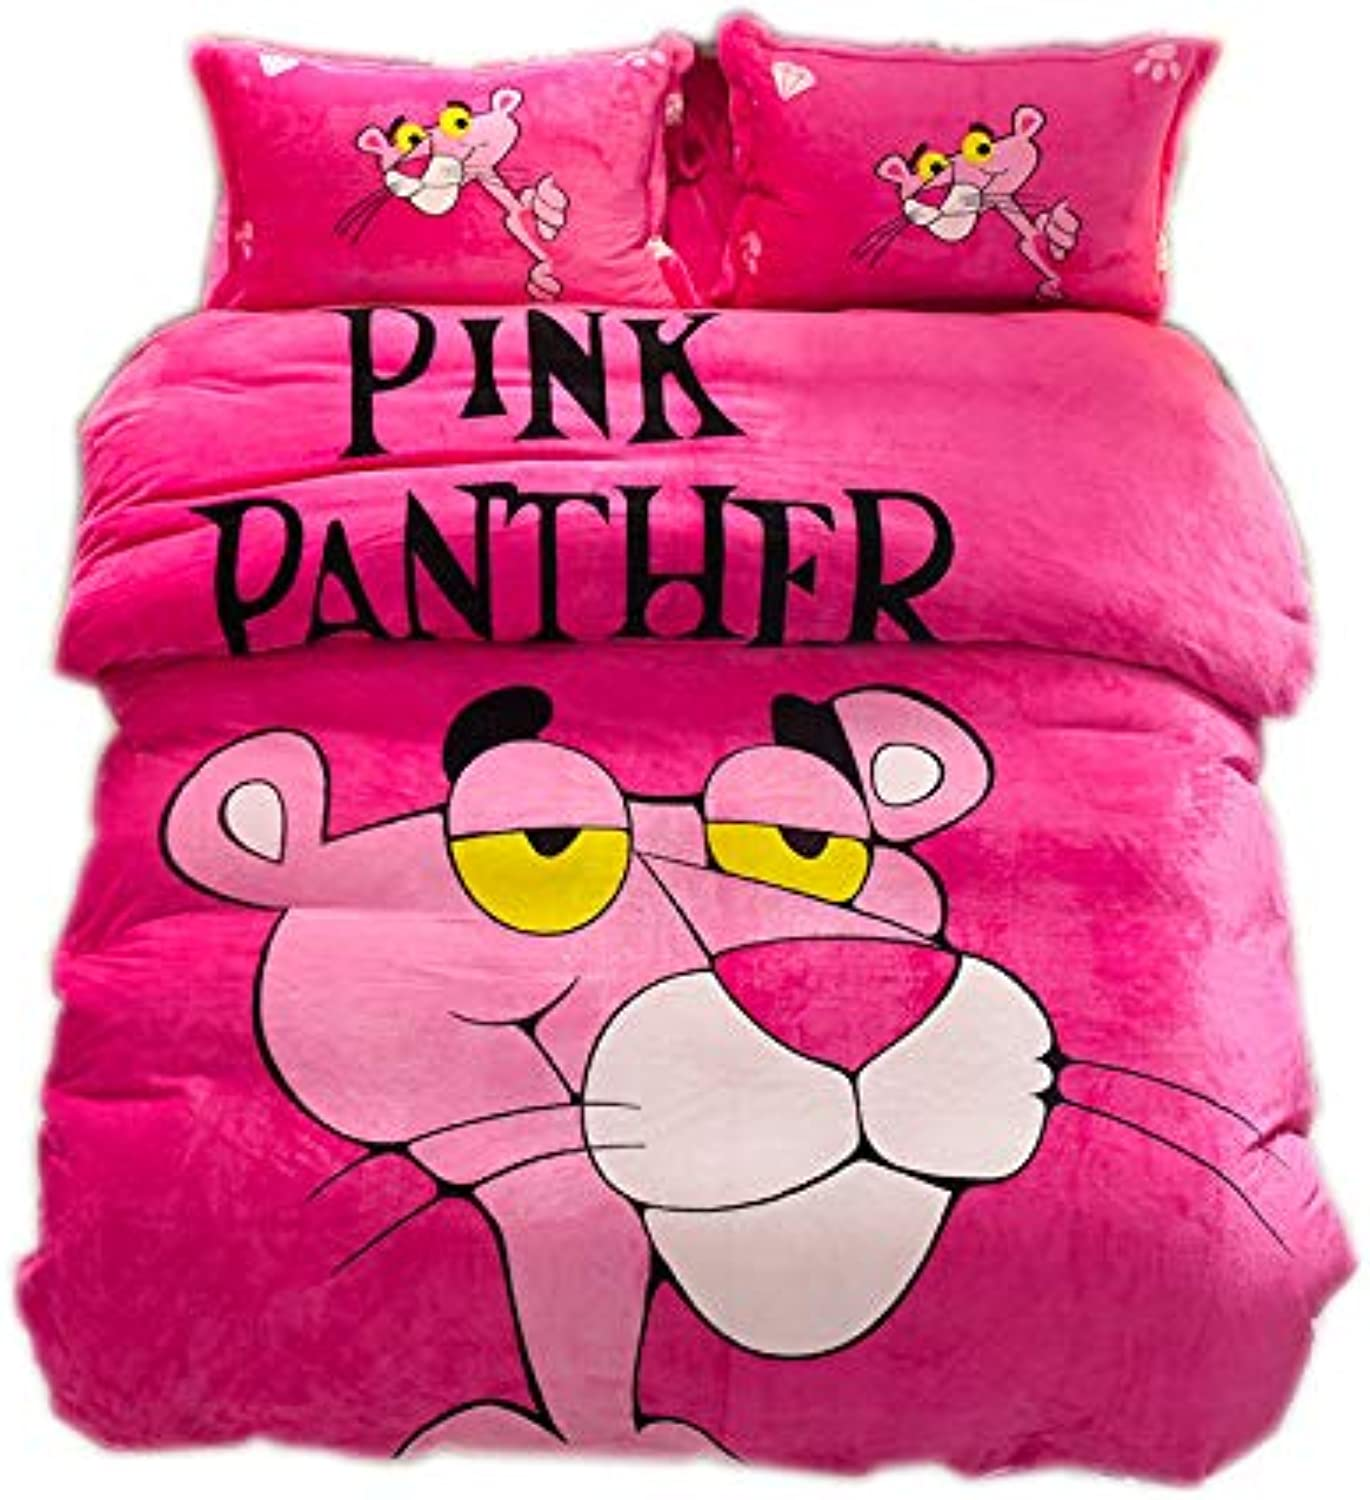 TravelMall 4pcs Thick Warming Flannel Home Queen Fitted Sheet AB Bedding Set Solid color Bed Predector Home Quilt Cover Blanket Set Predector School Dorm Cartoon Print  Pink Panther pink Red